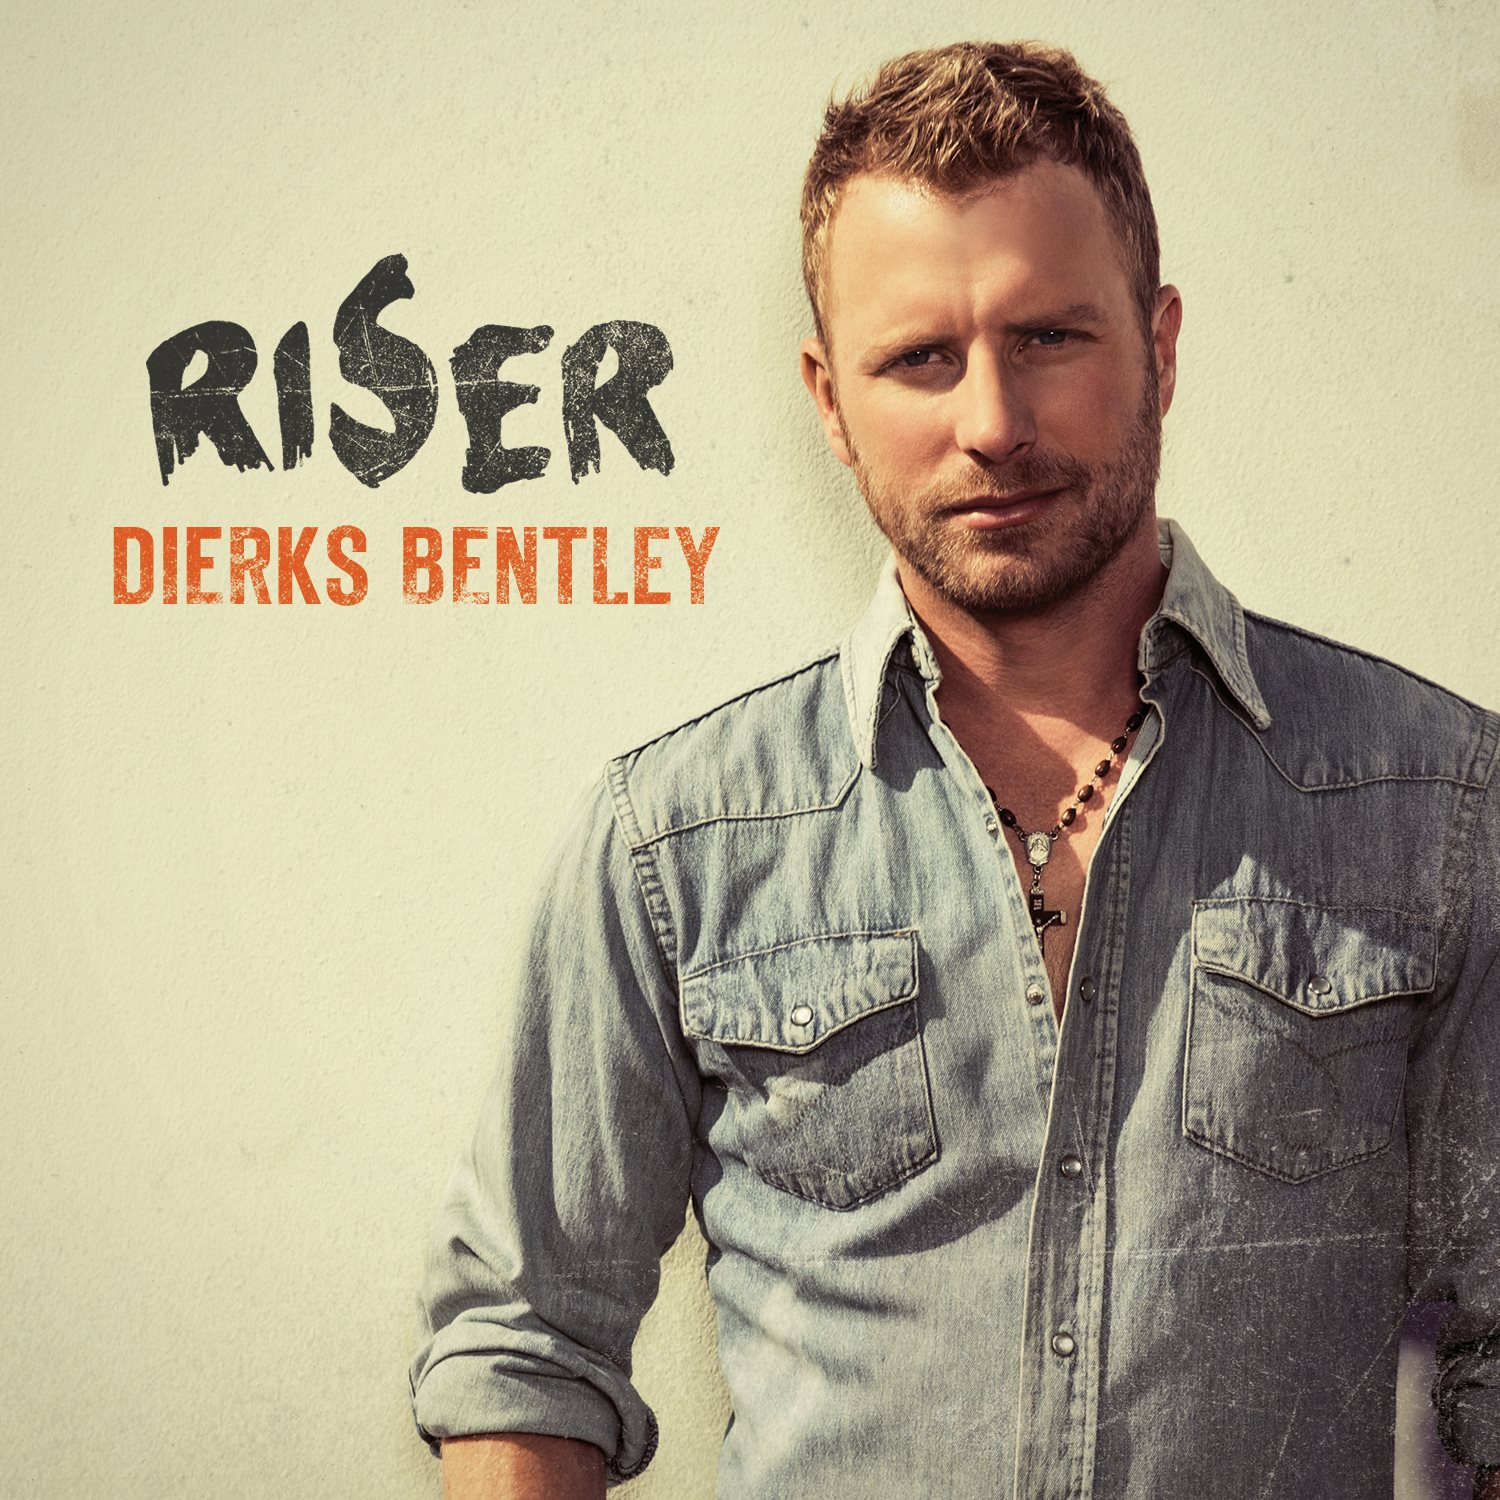 Dierks Bentley Riser 171 American Songwriter